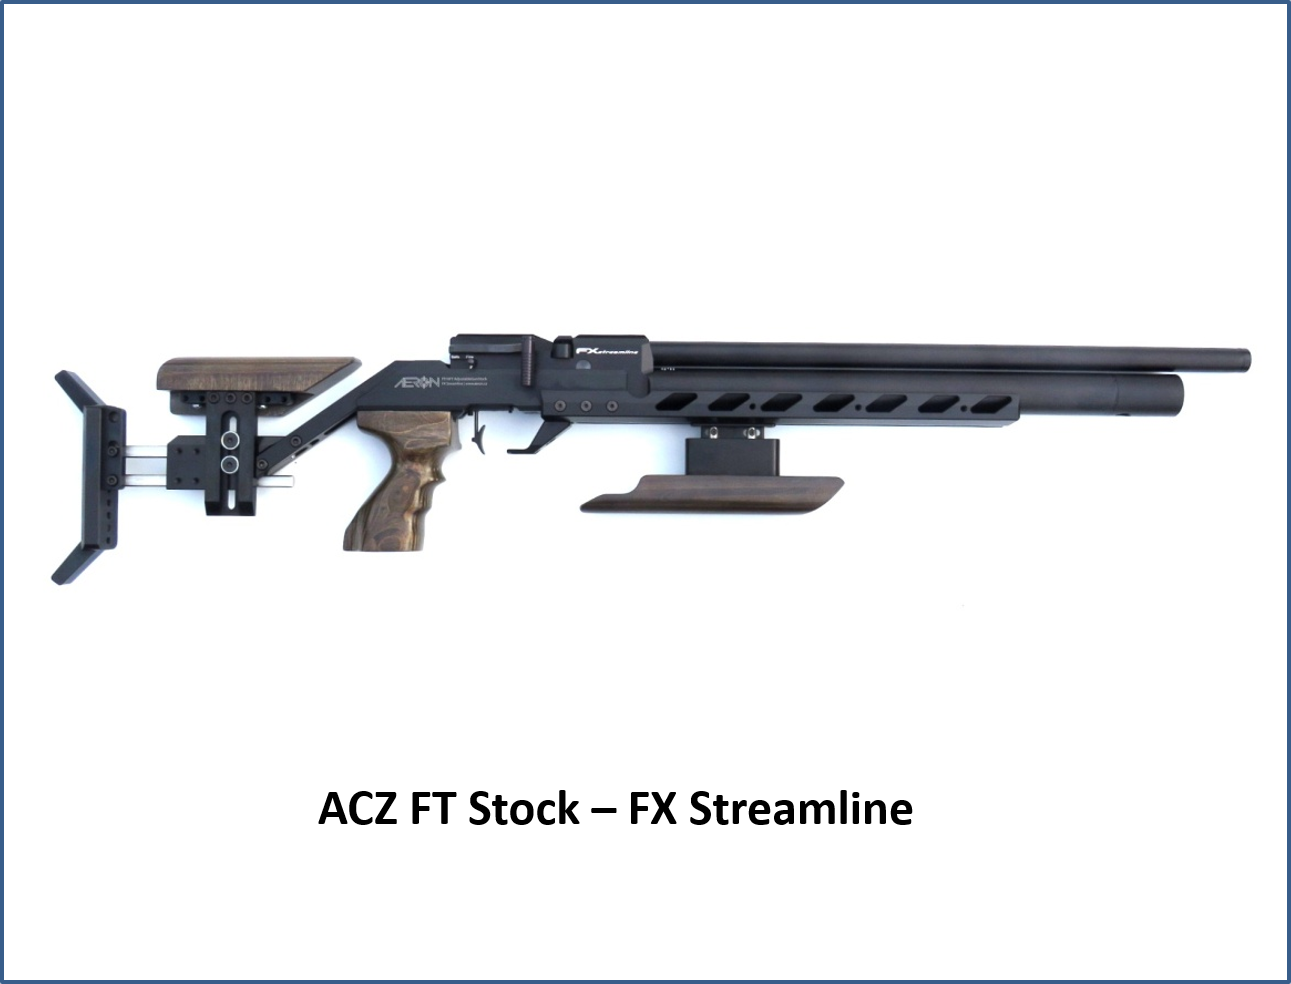 ACZ ULTRA FX STREAMLINE Custom Stock